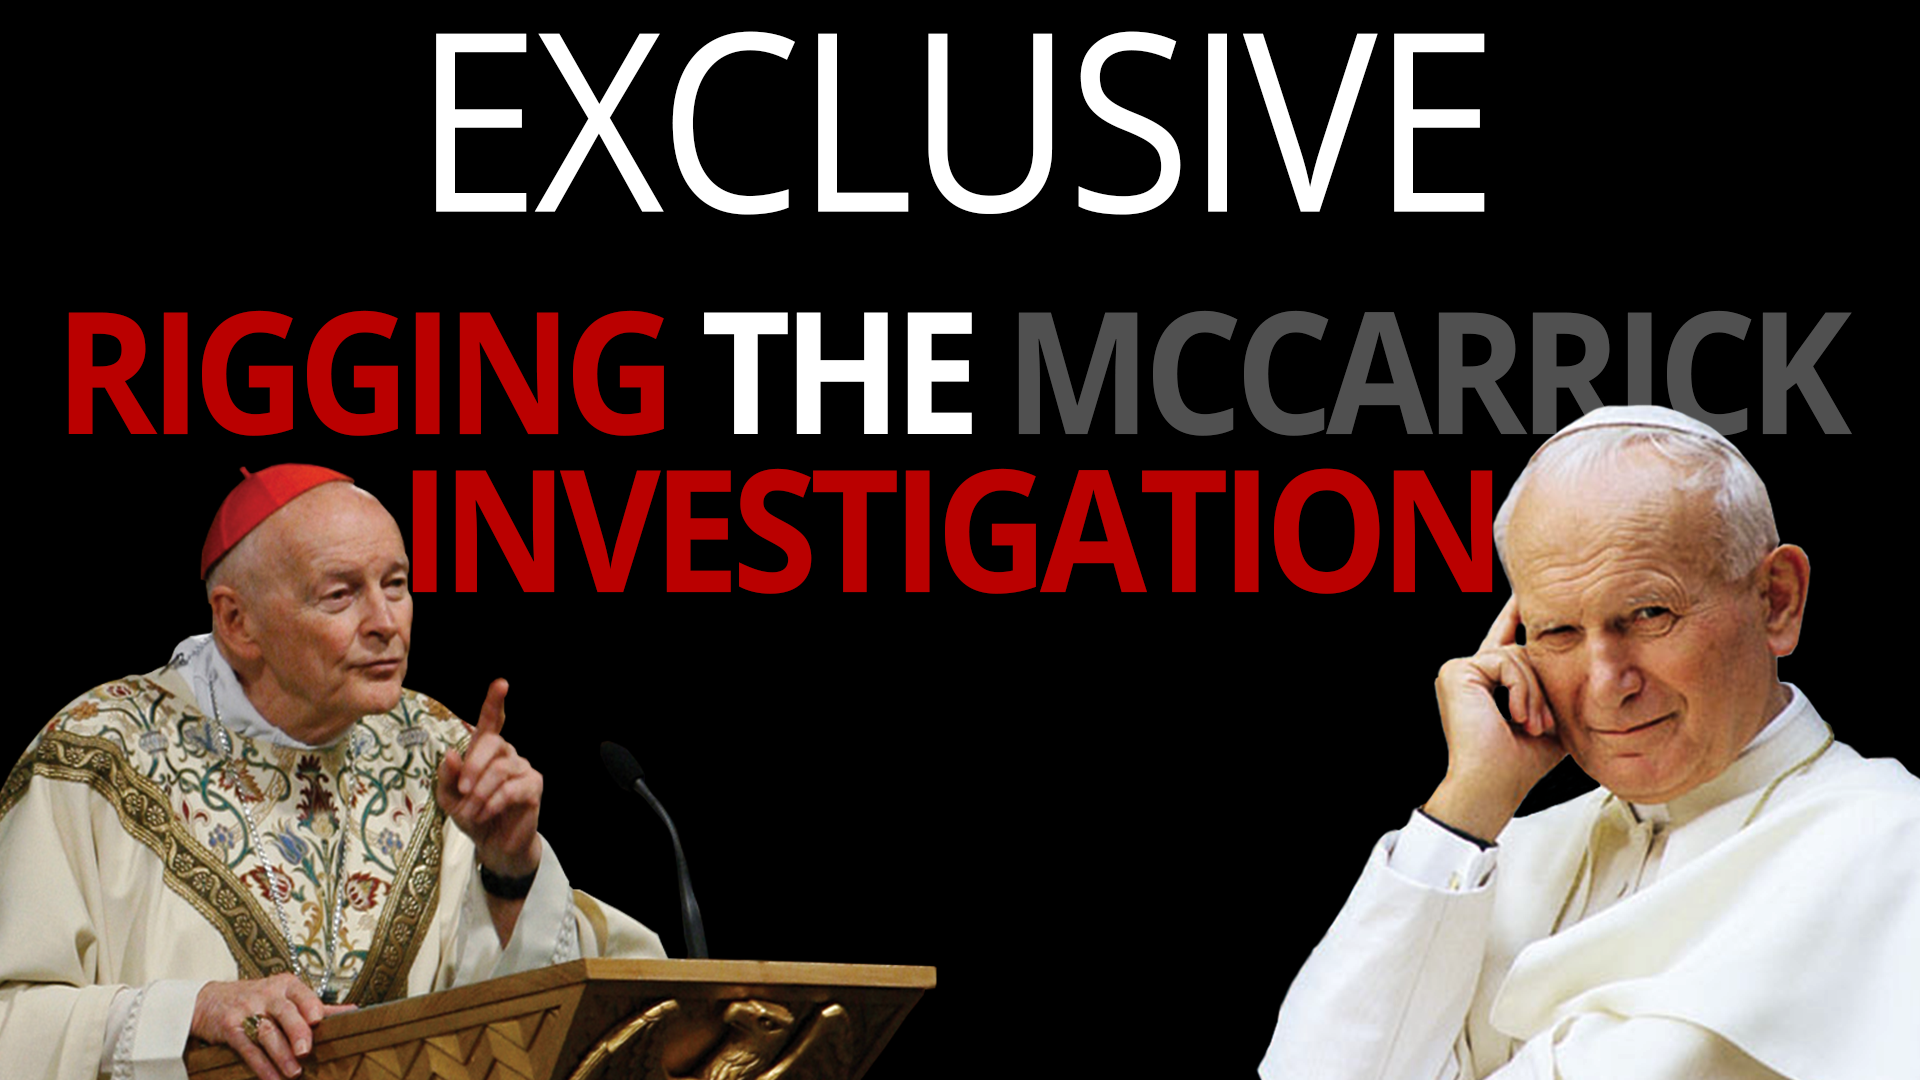 Vatican Rigging the McCarrick Investigation